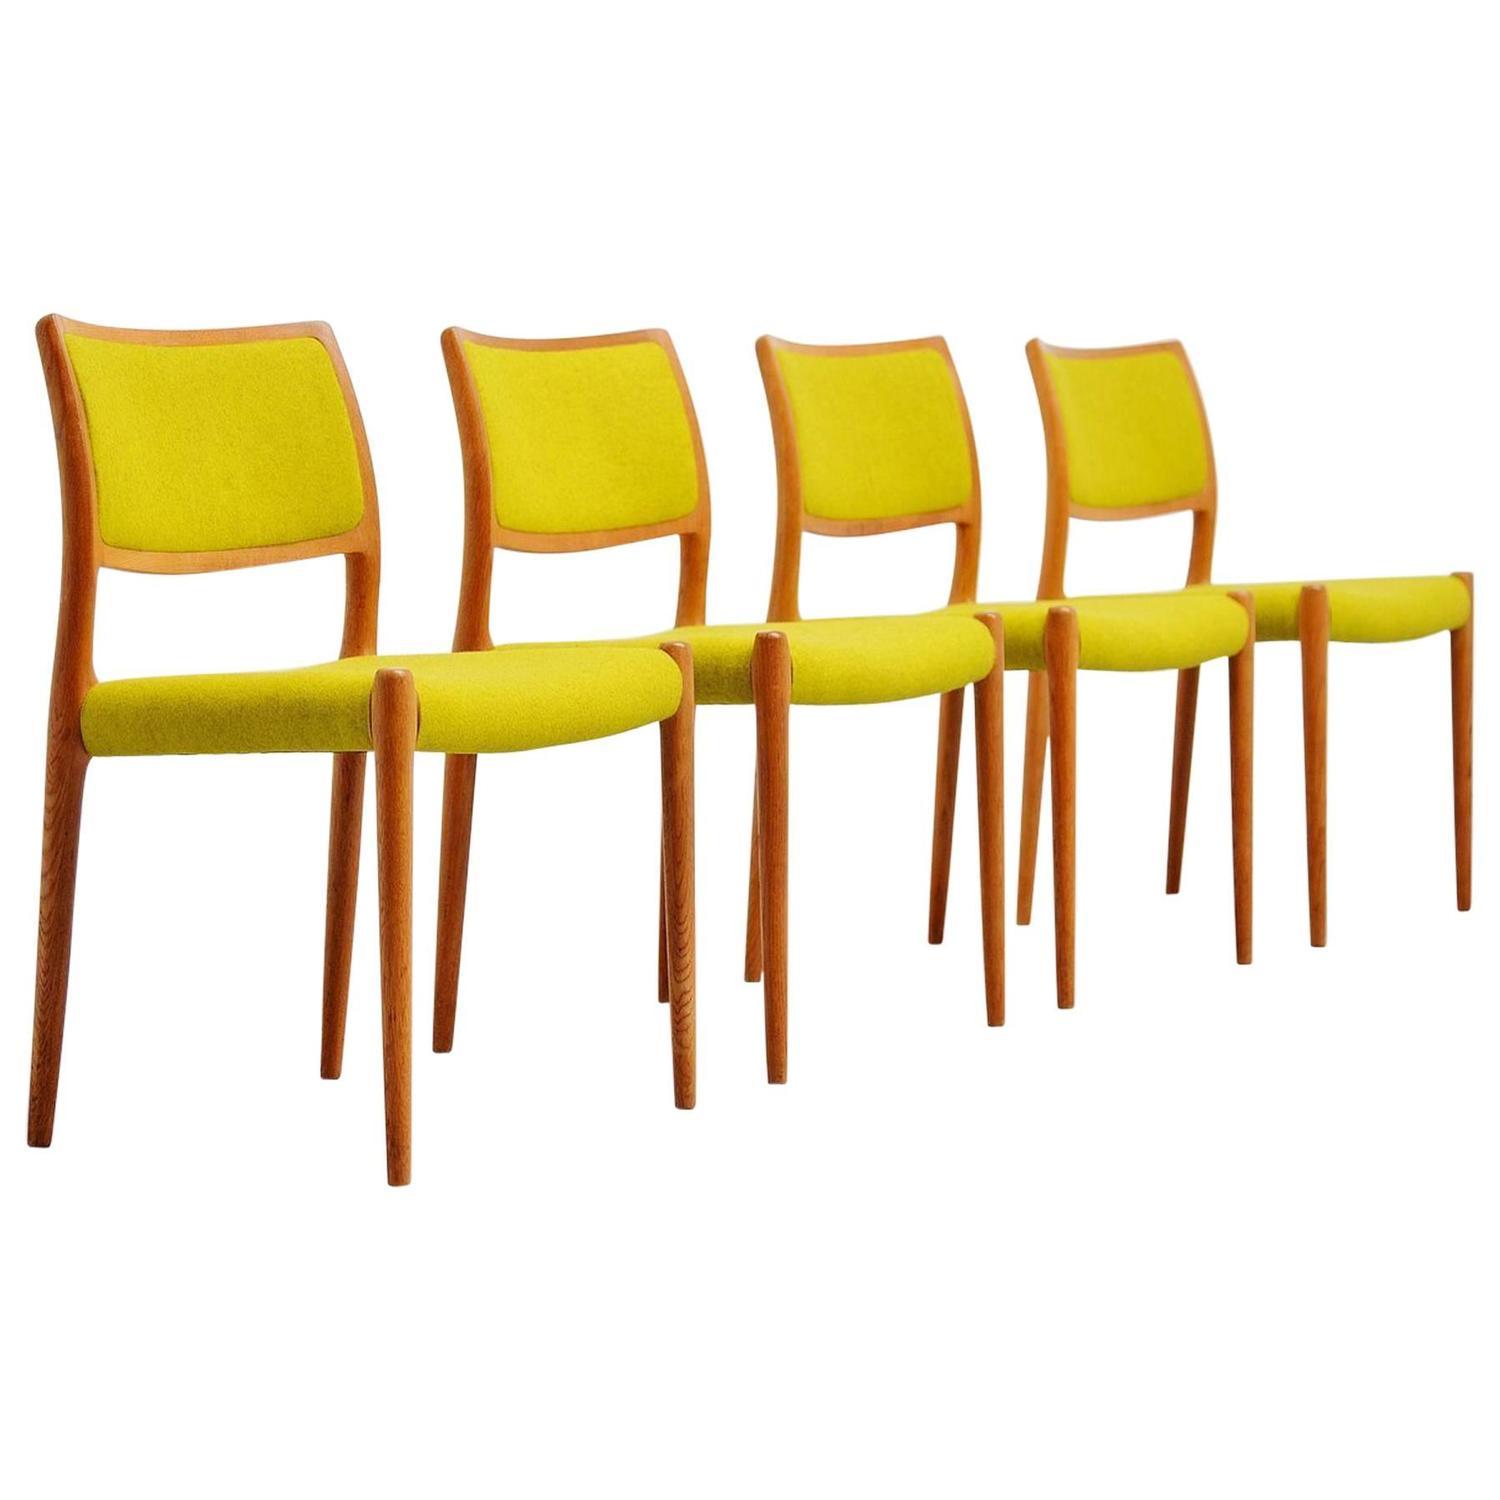 Niels Moller Model 80 Chairs In Oak Denmark 1968 For Sale At 1stdibs